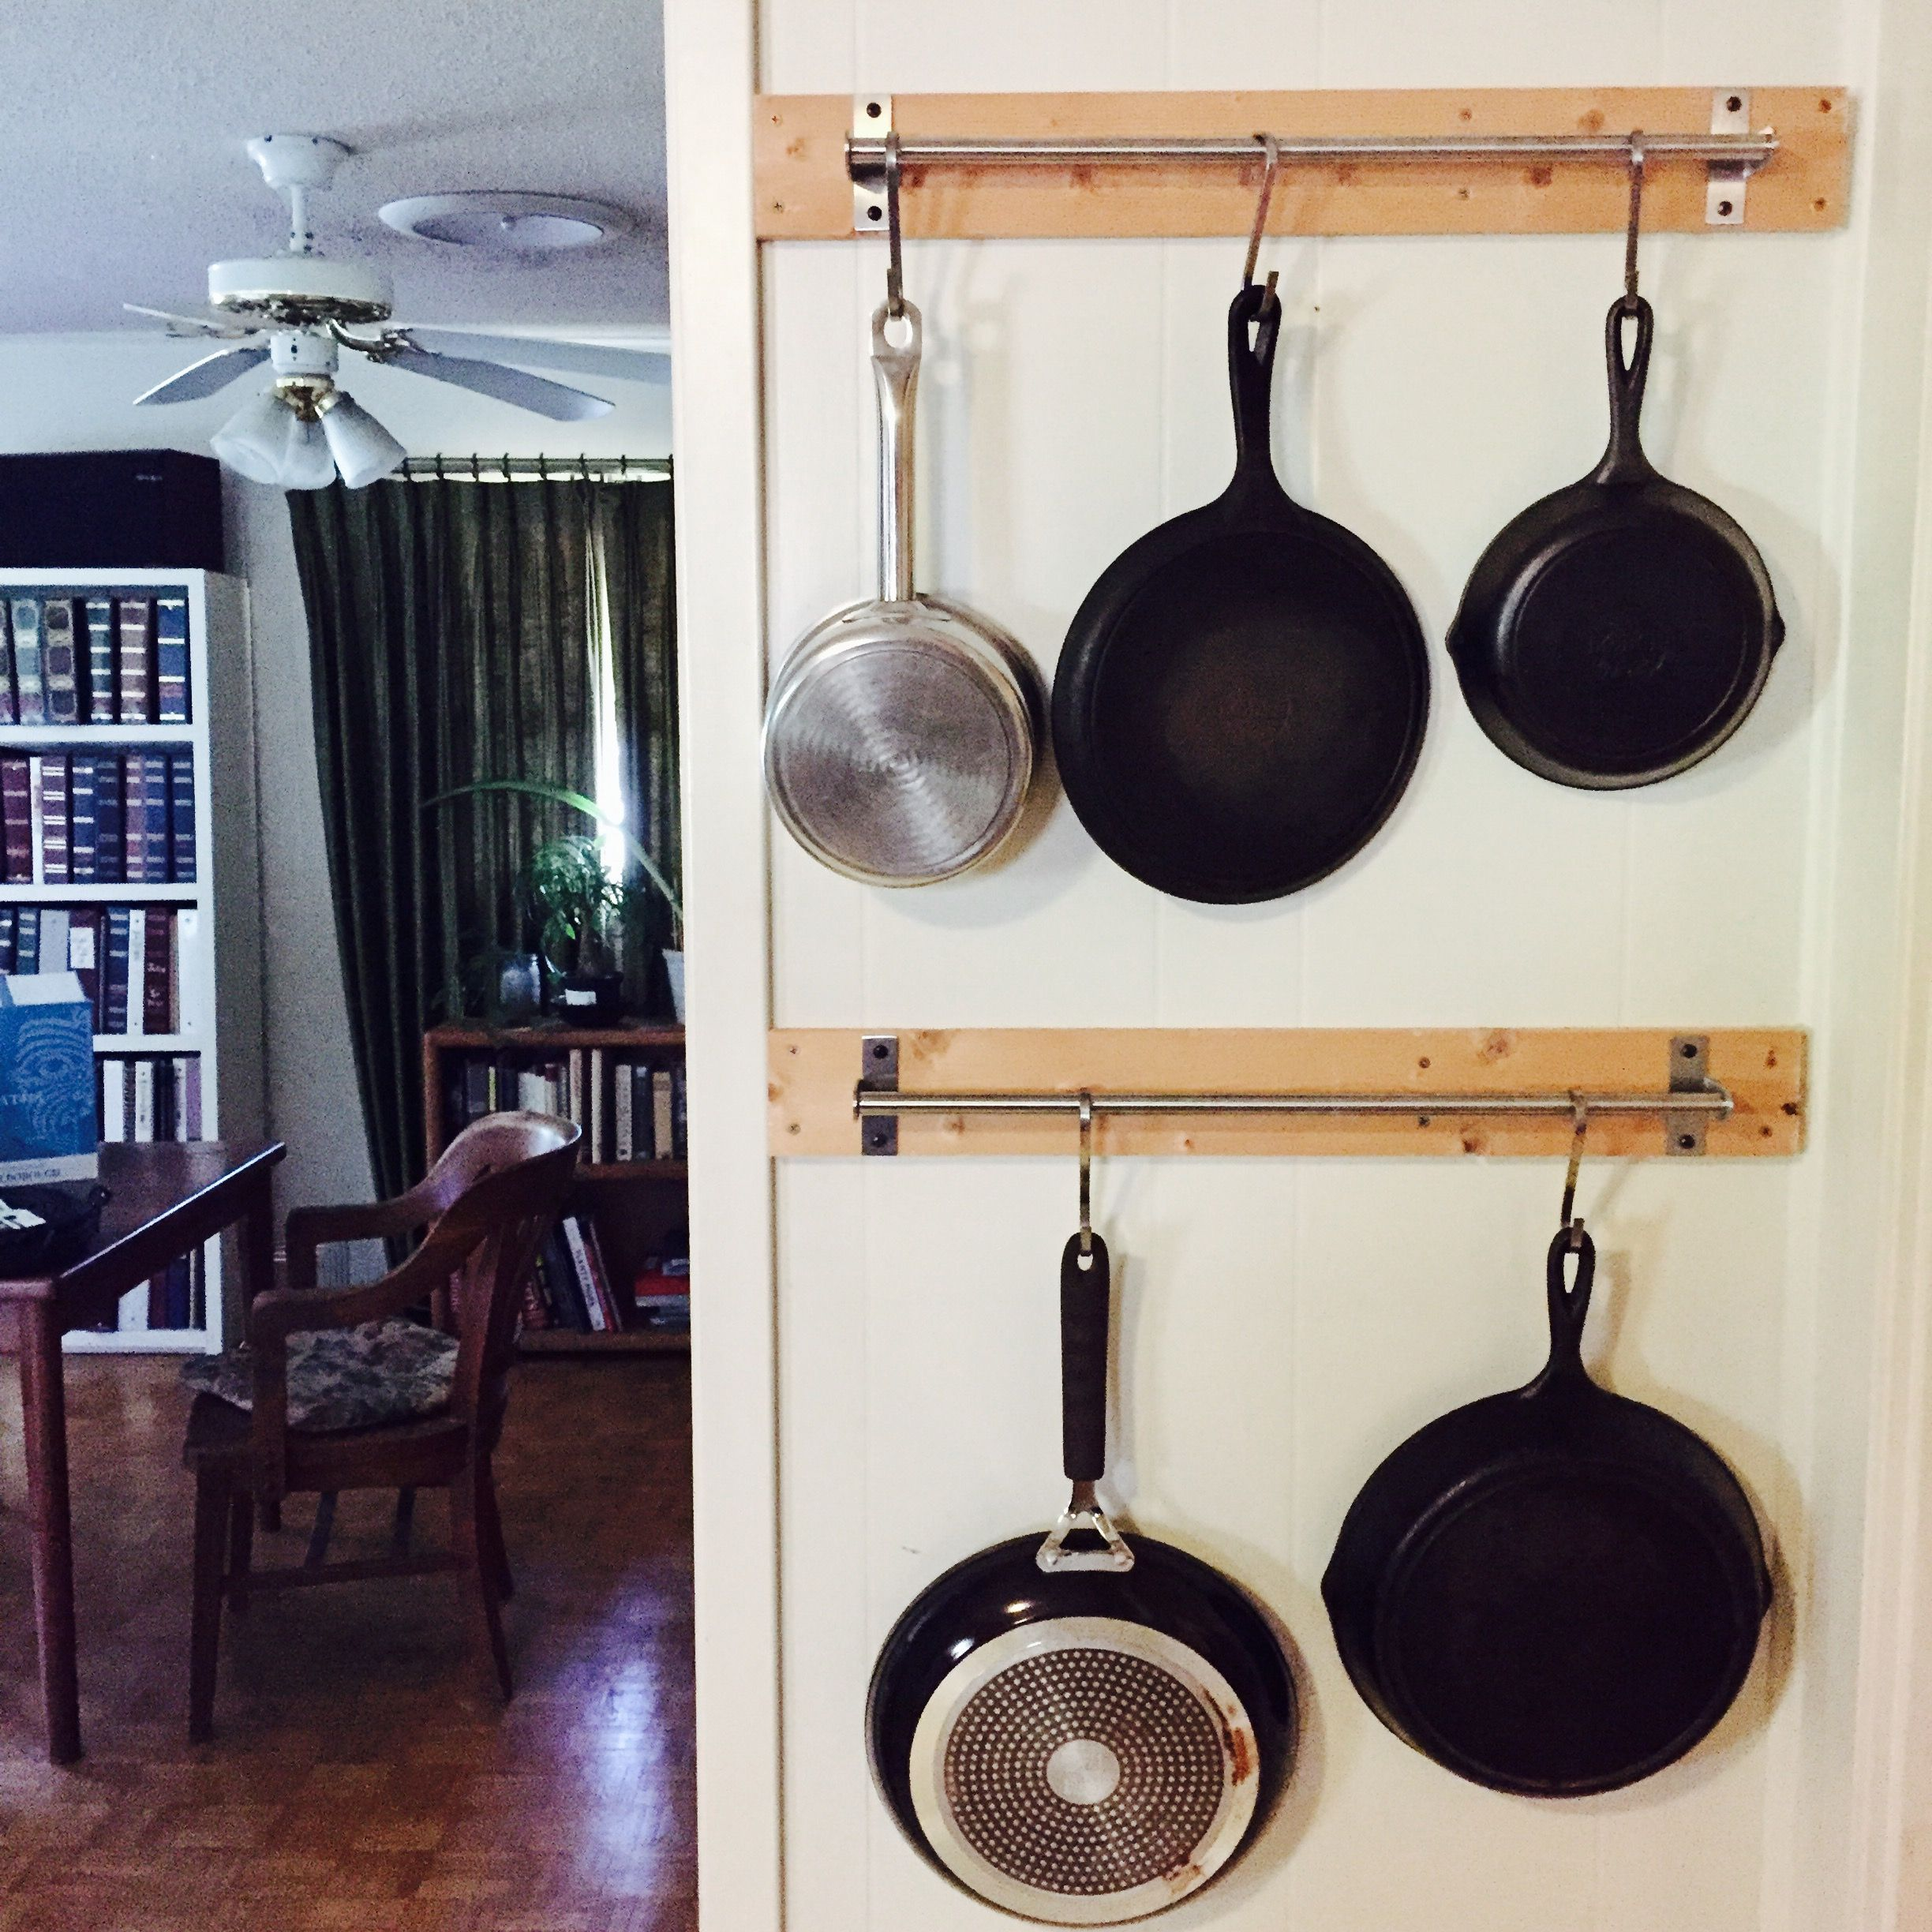 Ikea Pot Hanger Diy Wall Hanging Pans 1x4s And Ikea Hanging Rods My